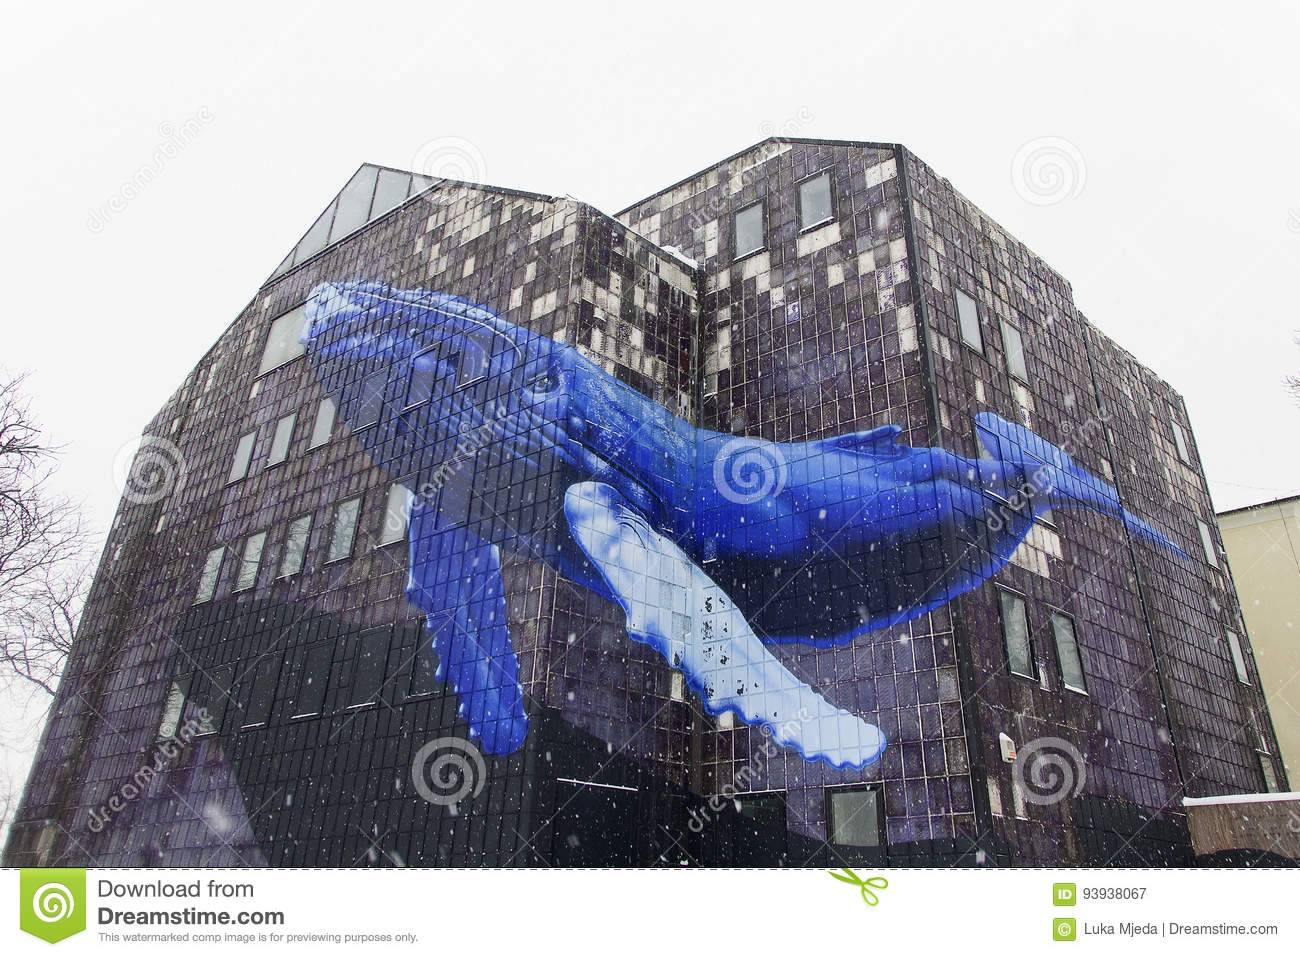 Blue Whale flying through a building